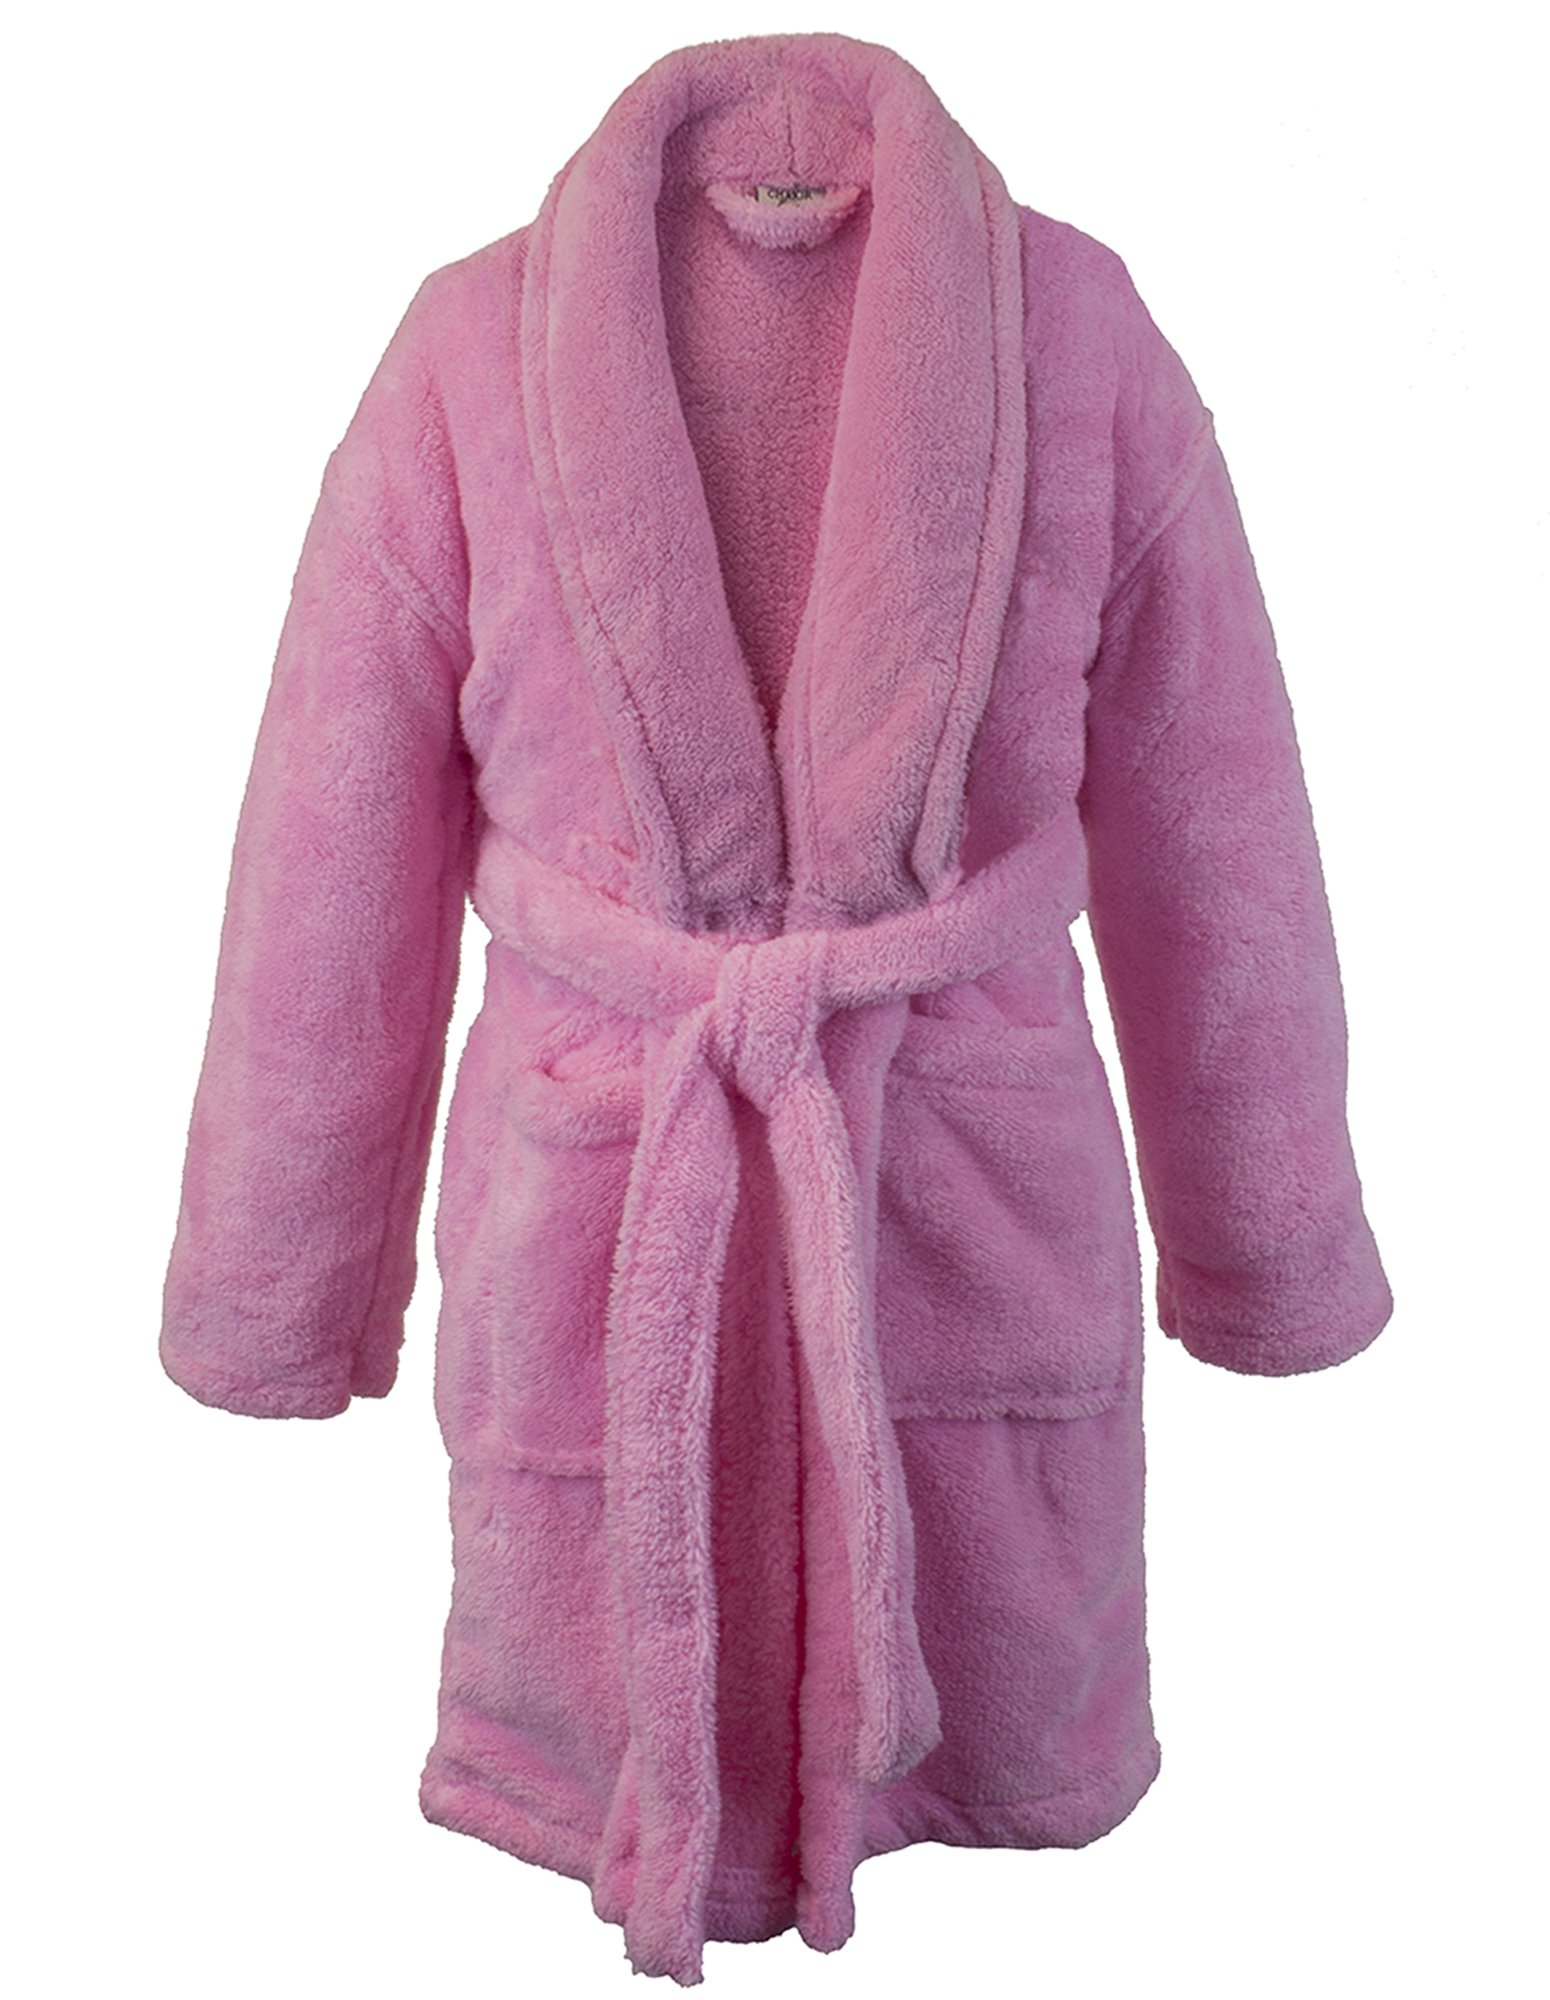 BC BARE COTTON Kids Microfiber Fleece Shawl Robe - Girls - Pink - Medium